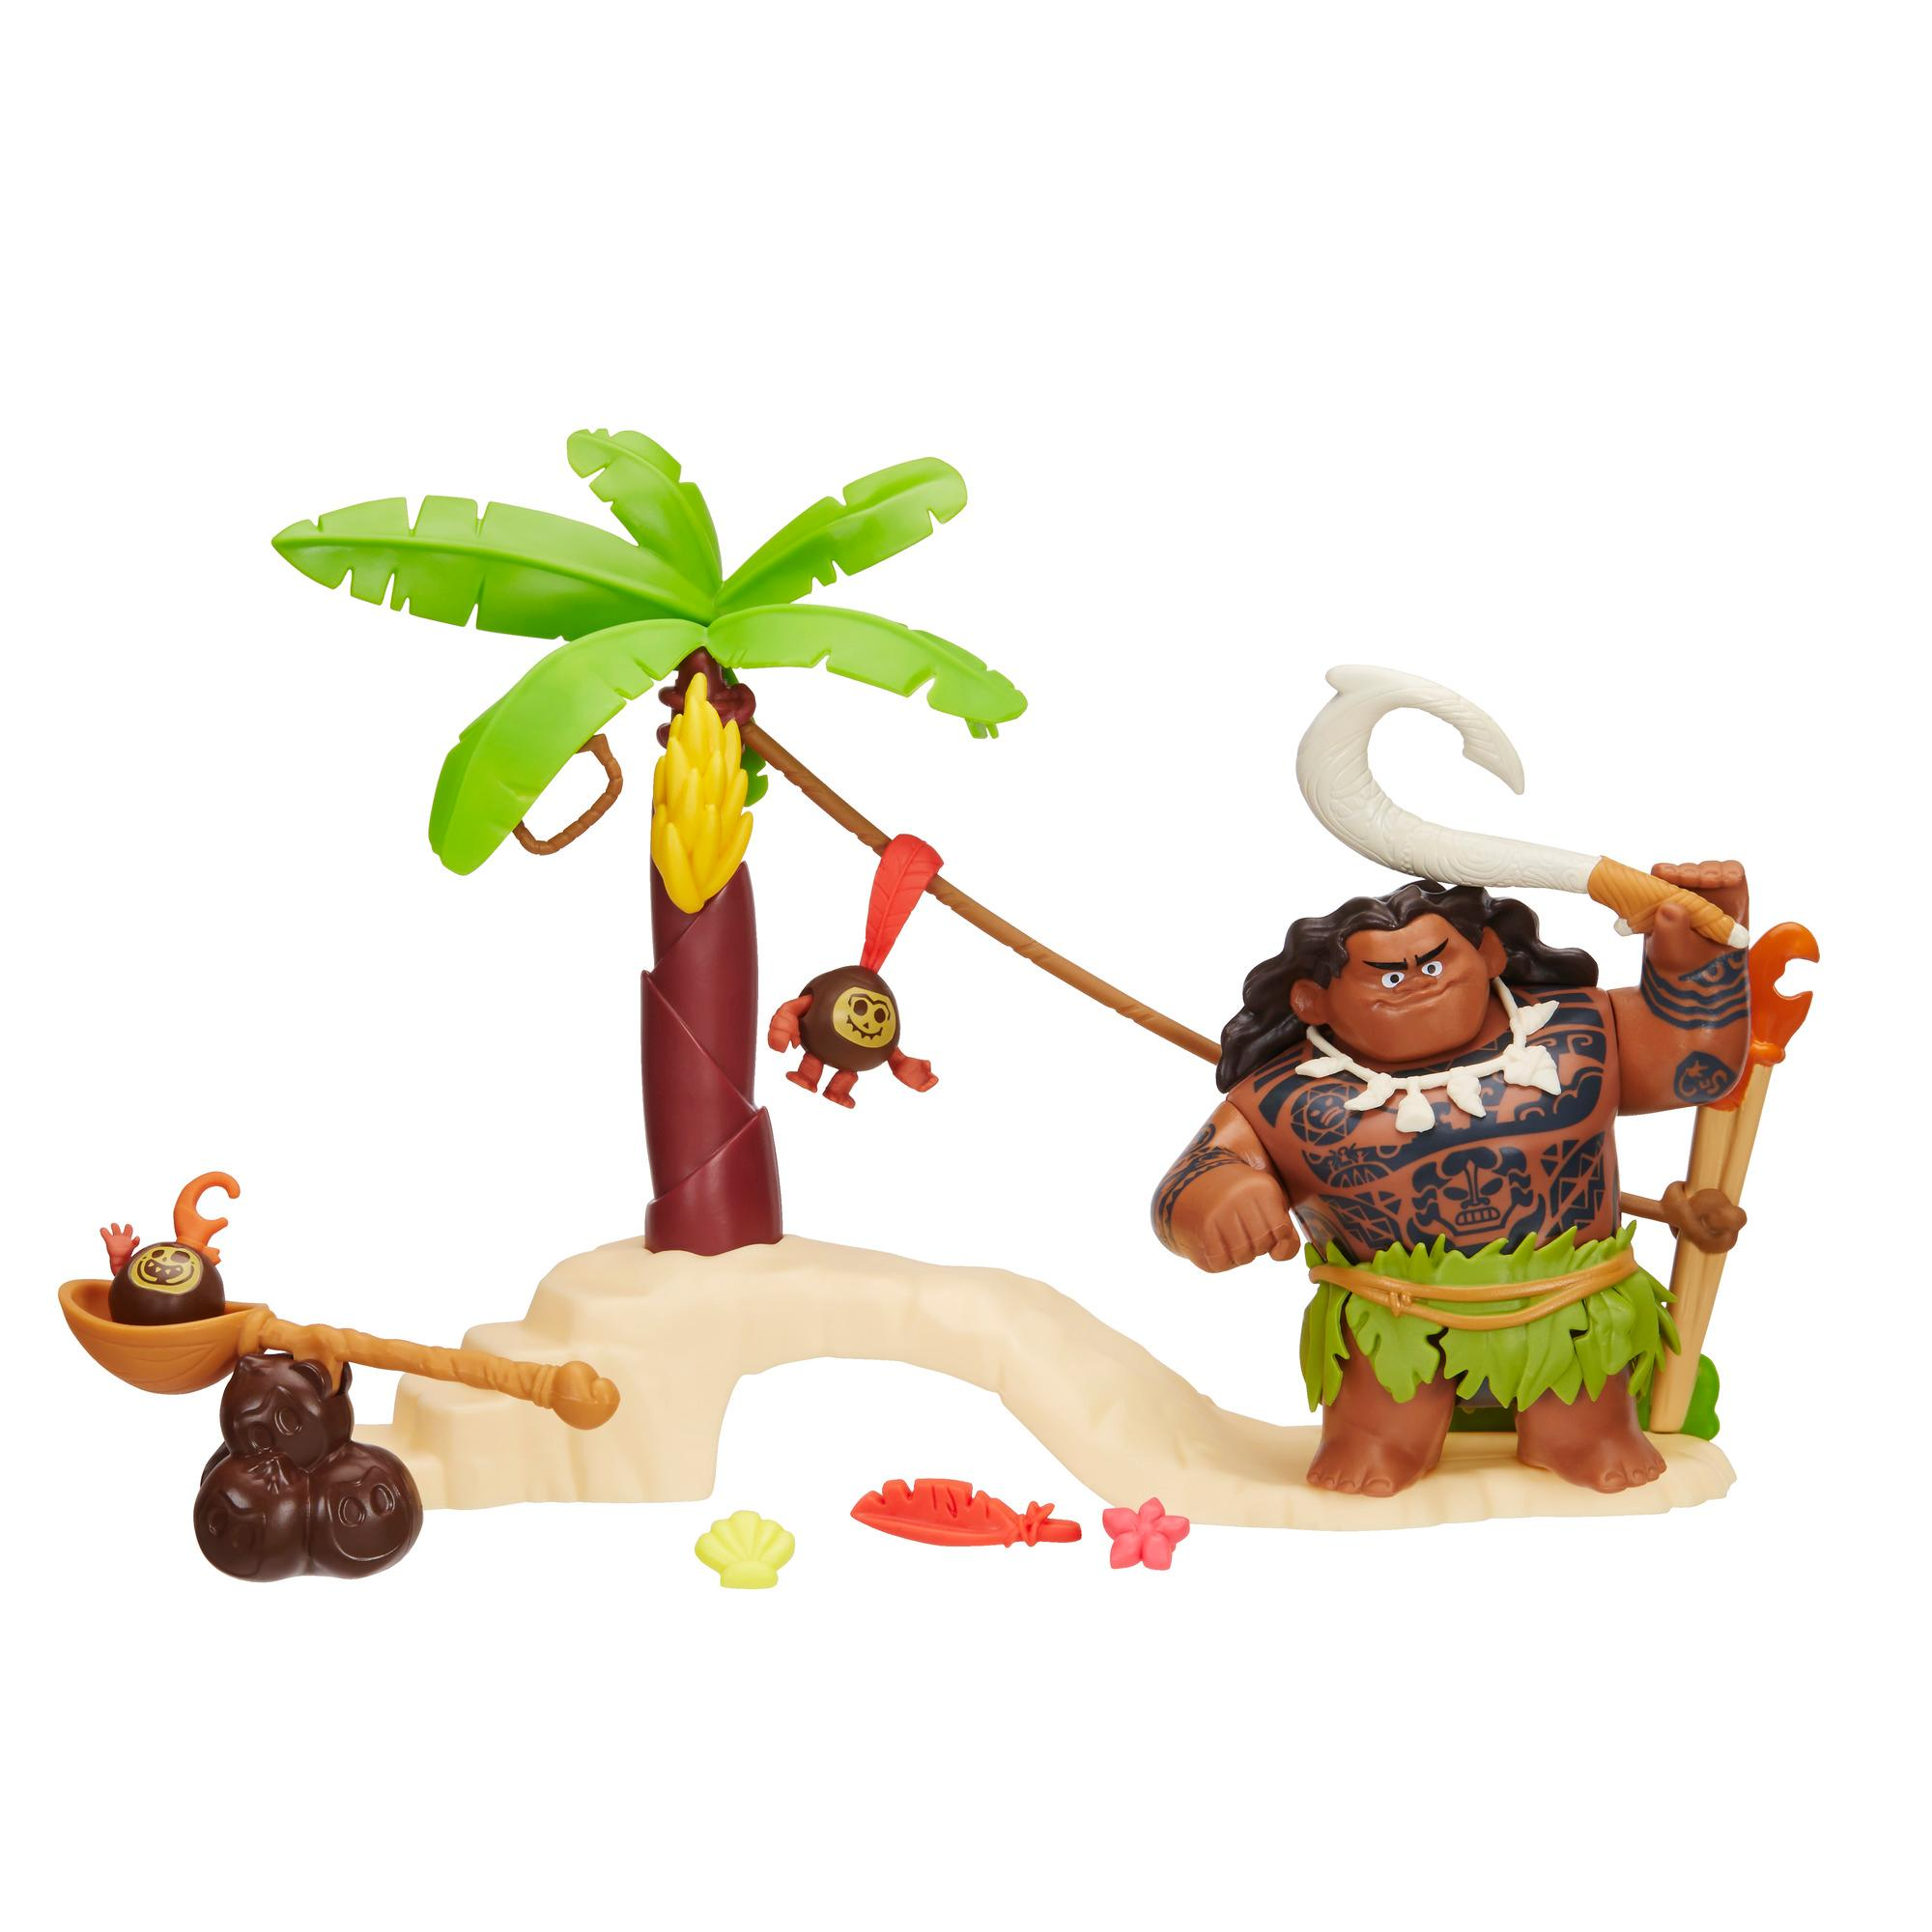 Disney Moana Maui the Demigod s Kakamora Adventure